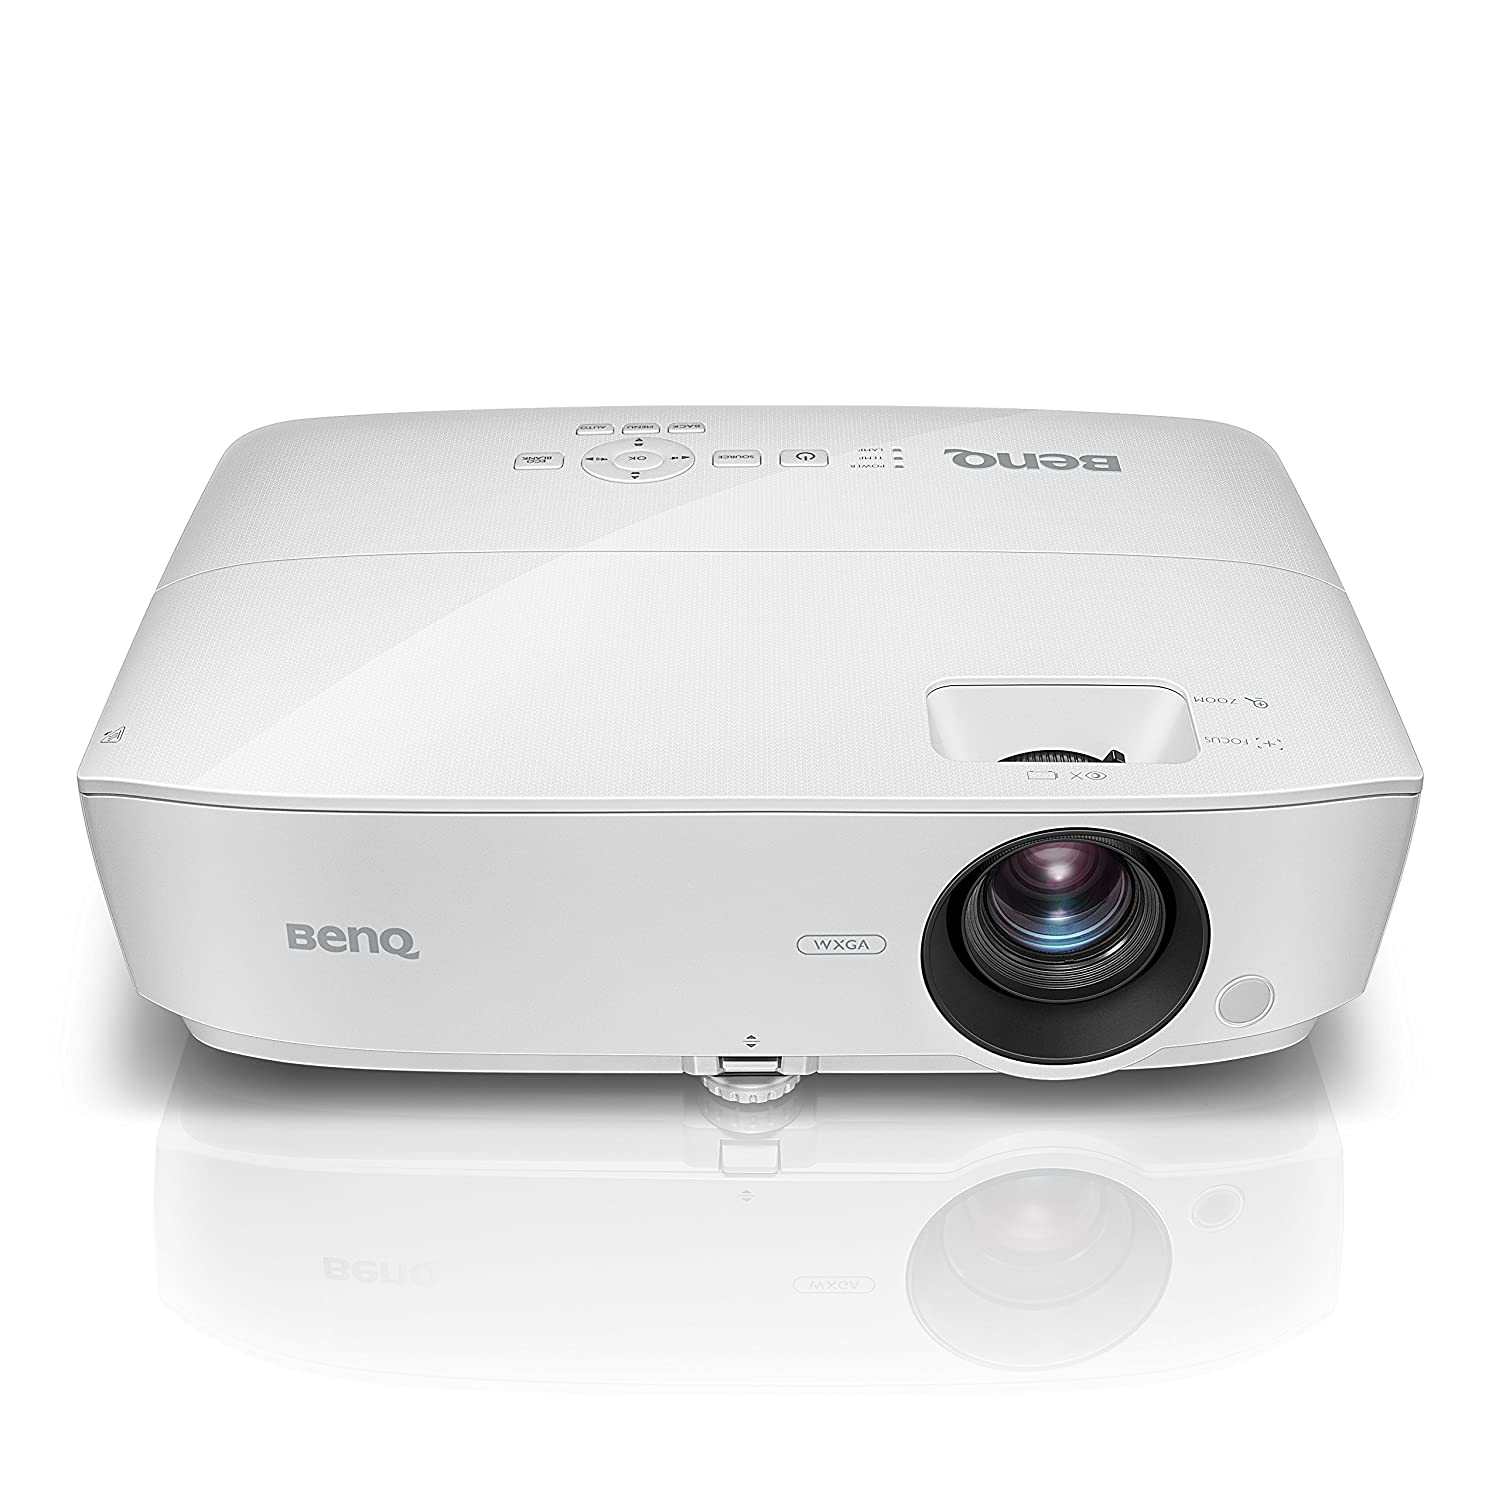 fdf49377b43 Amazon.com: BenQ MW535A 1080p Supported WXGA 3600 Lumens HDMI Vibrant Color  Projector for Home and Office: Electronics